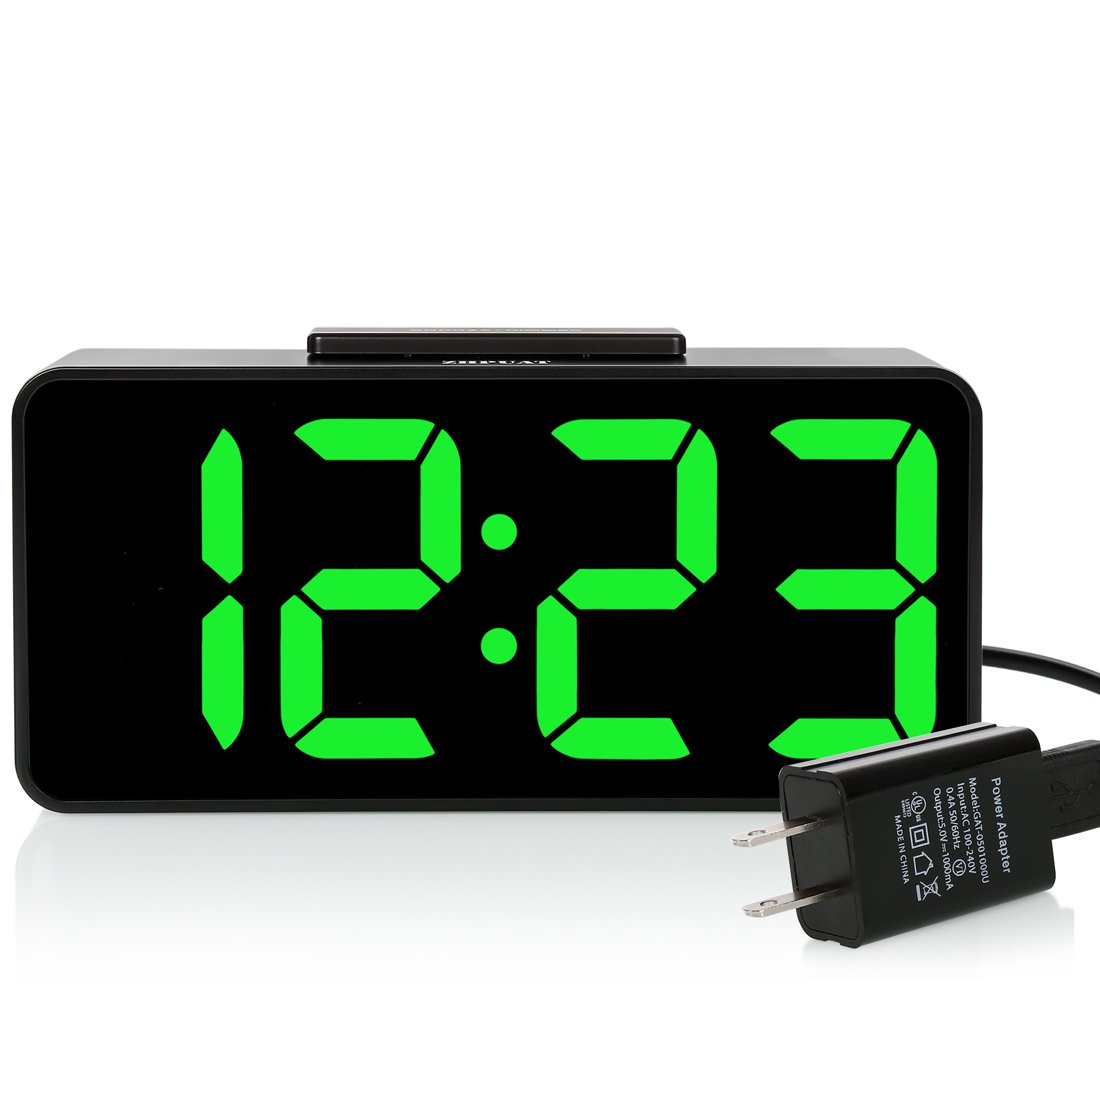 """ZHPUAT [Updated Version On Brightness] 8.9"""" Big Screen Digital Alarm Clock with Dimmer and Alarm Sound Control Function with USB Charger,Battery Backup (Green)"""